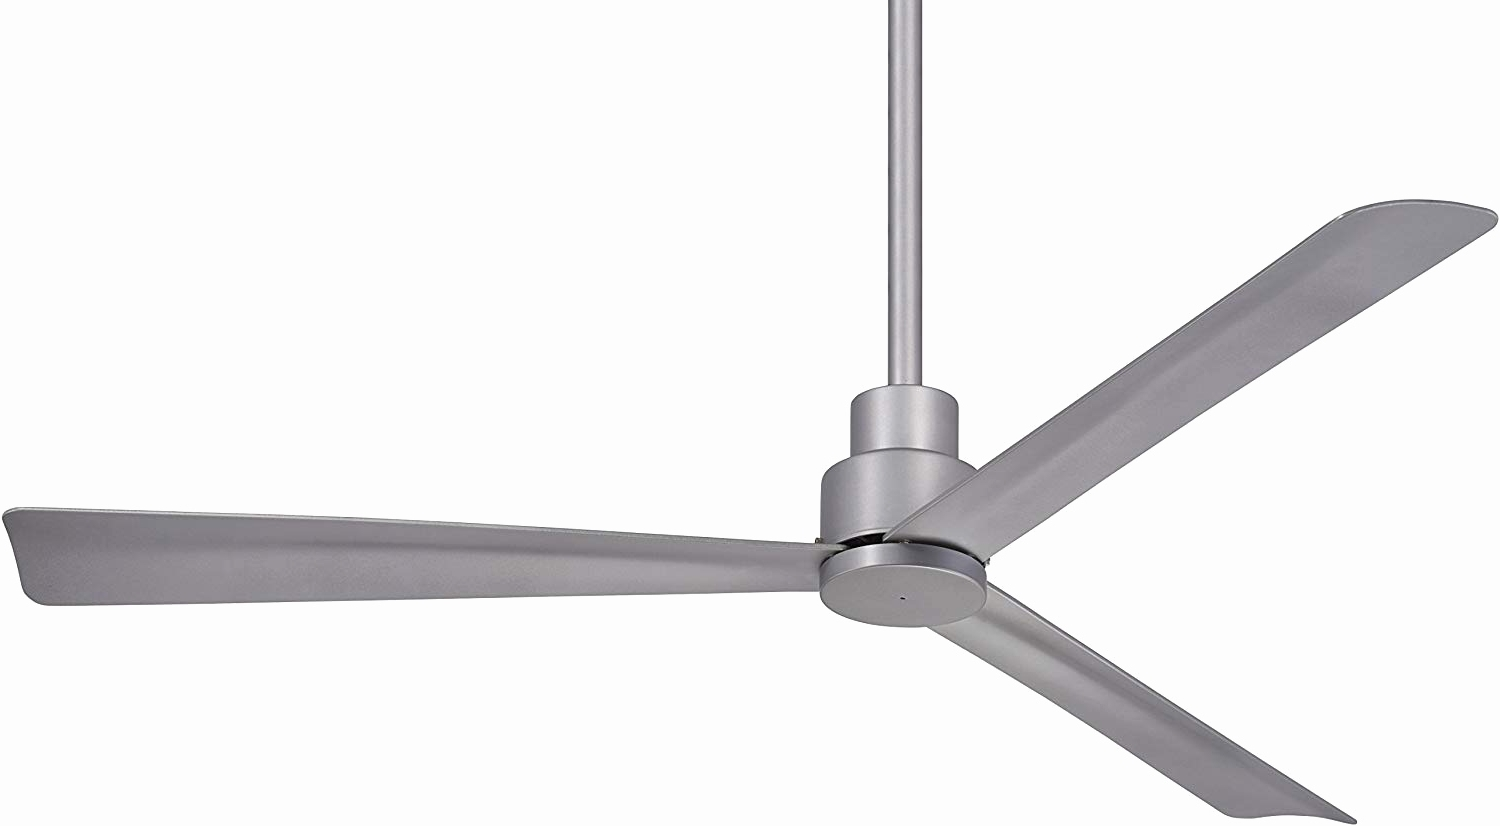 Aftu For Outdoor Ceiling Fans At Amazon (View 1 of 21)